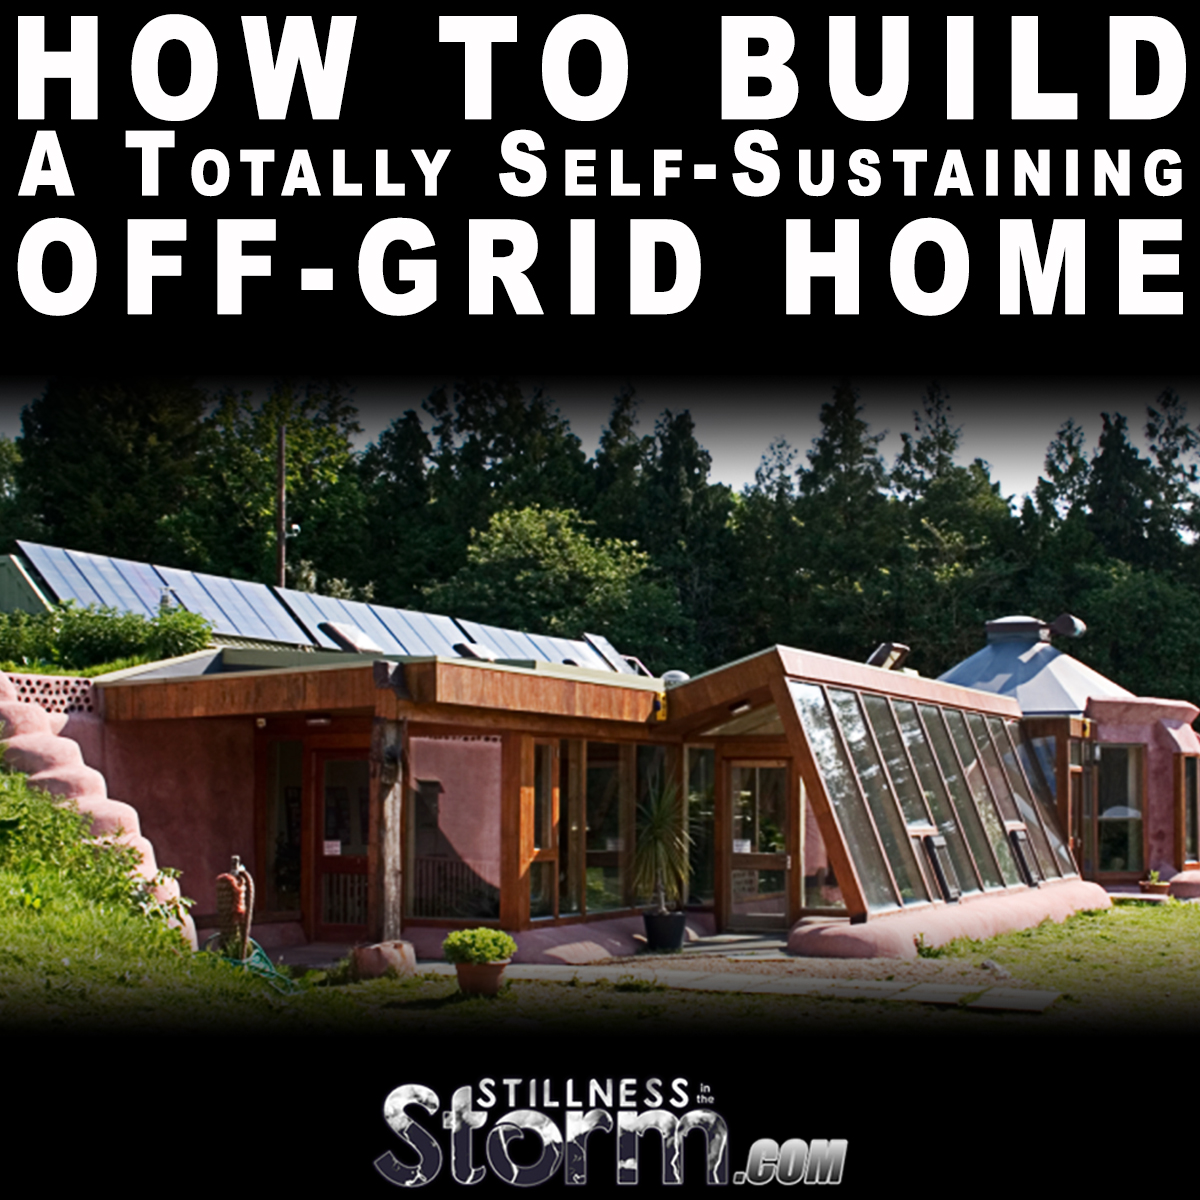 Building off grid homes - How To Build A Totally Self Sustaining Off Grid Home All About Earthships Full Length Documentary